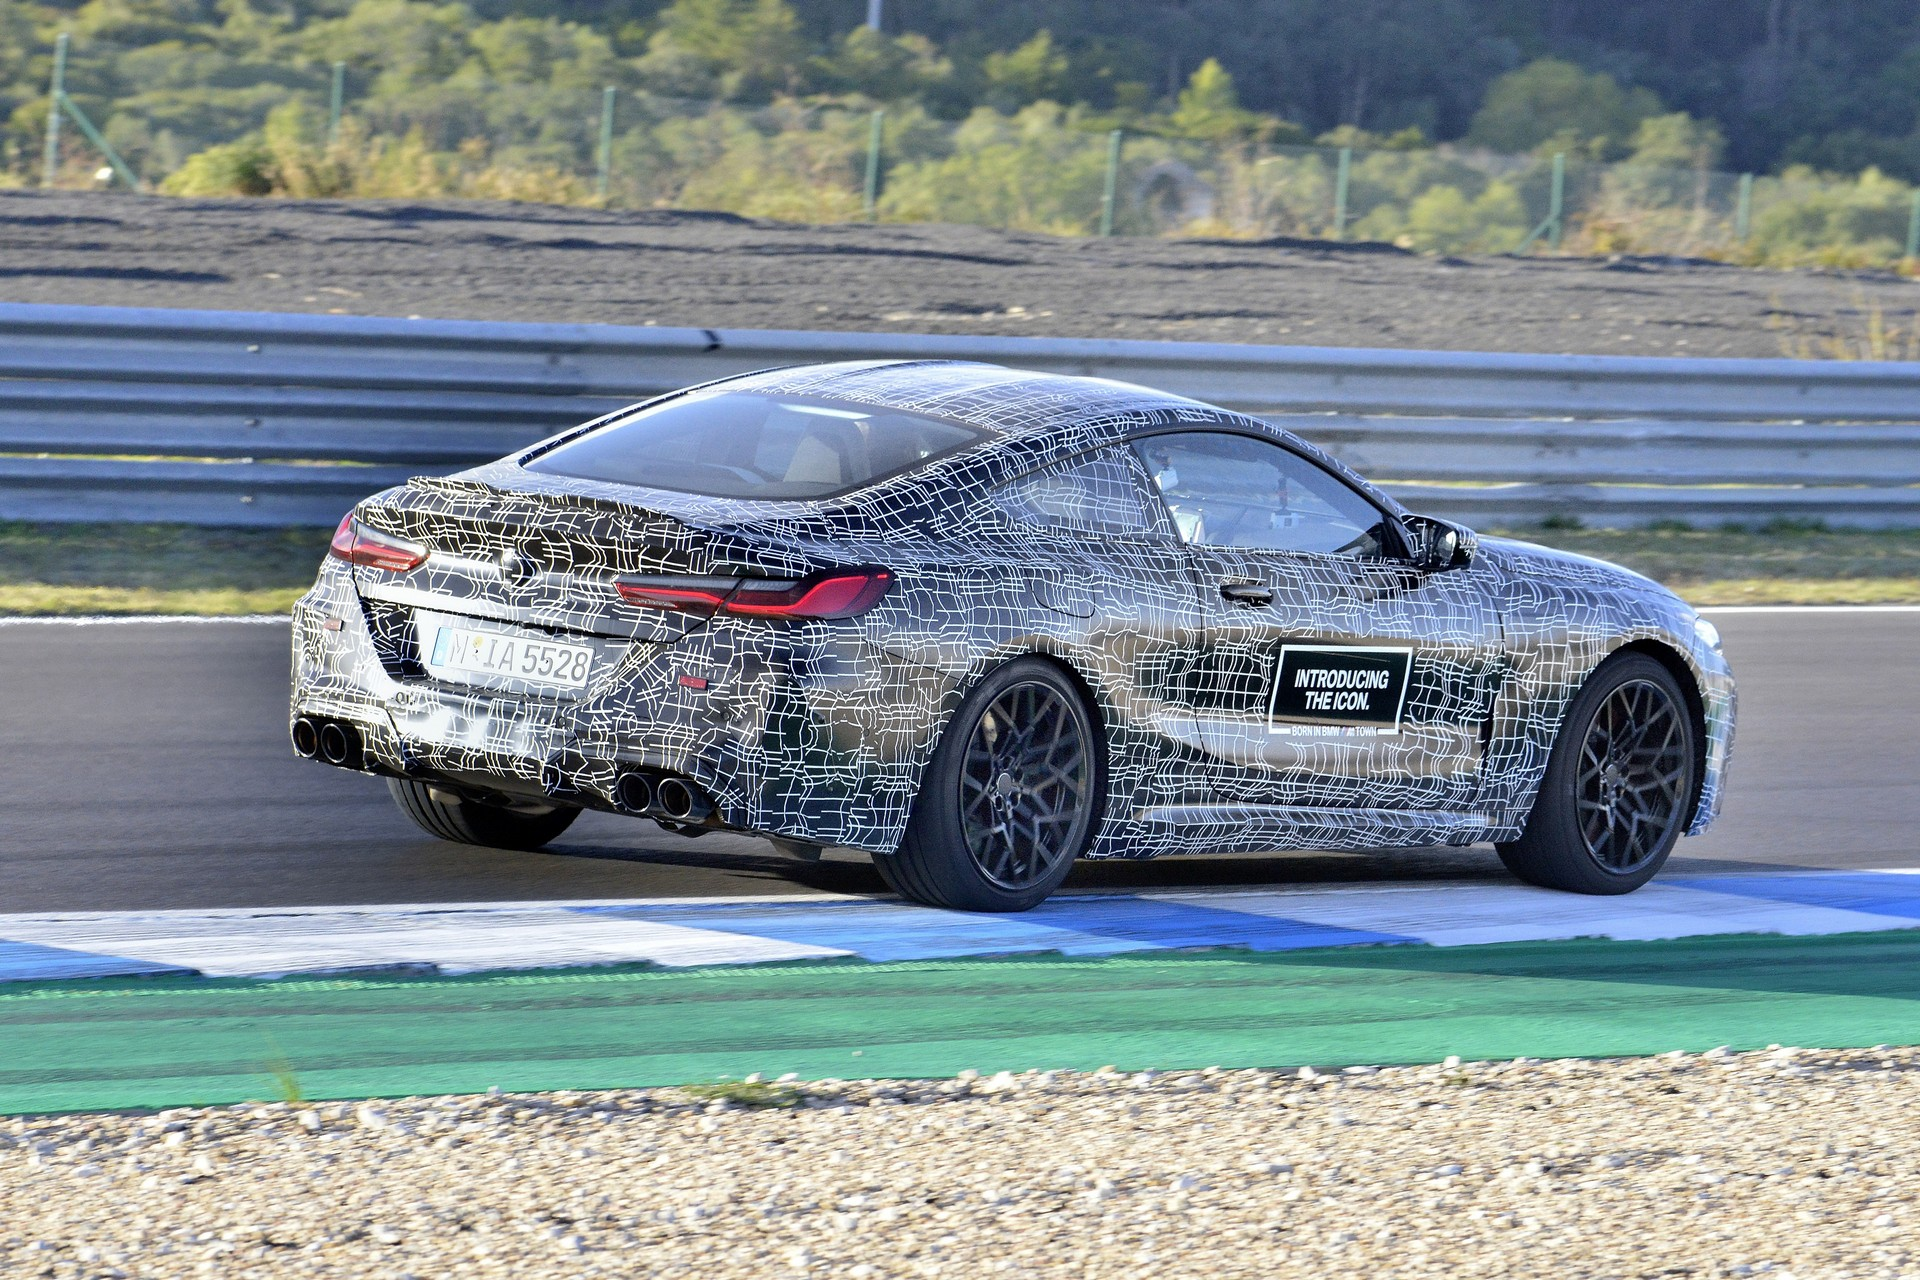 The BMW M8 could have more than 600 horsepower